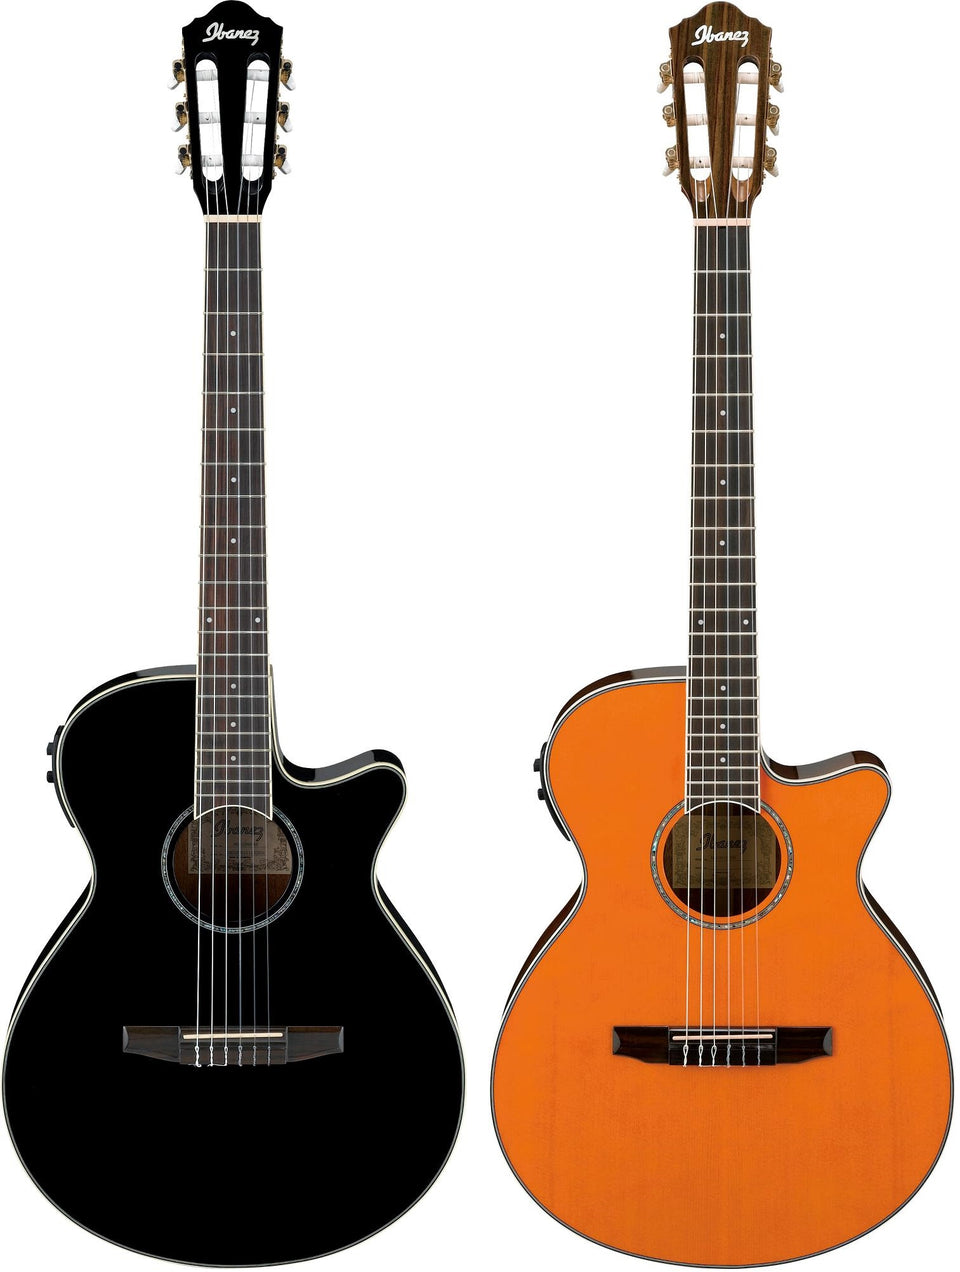 Ibanez AEG10NII Nylon String Cutaway Acoustic Electric Guitar